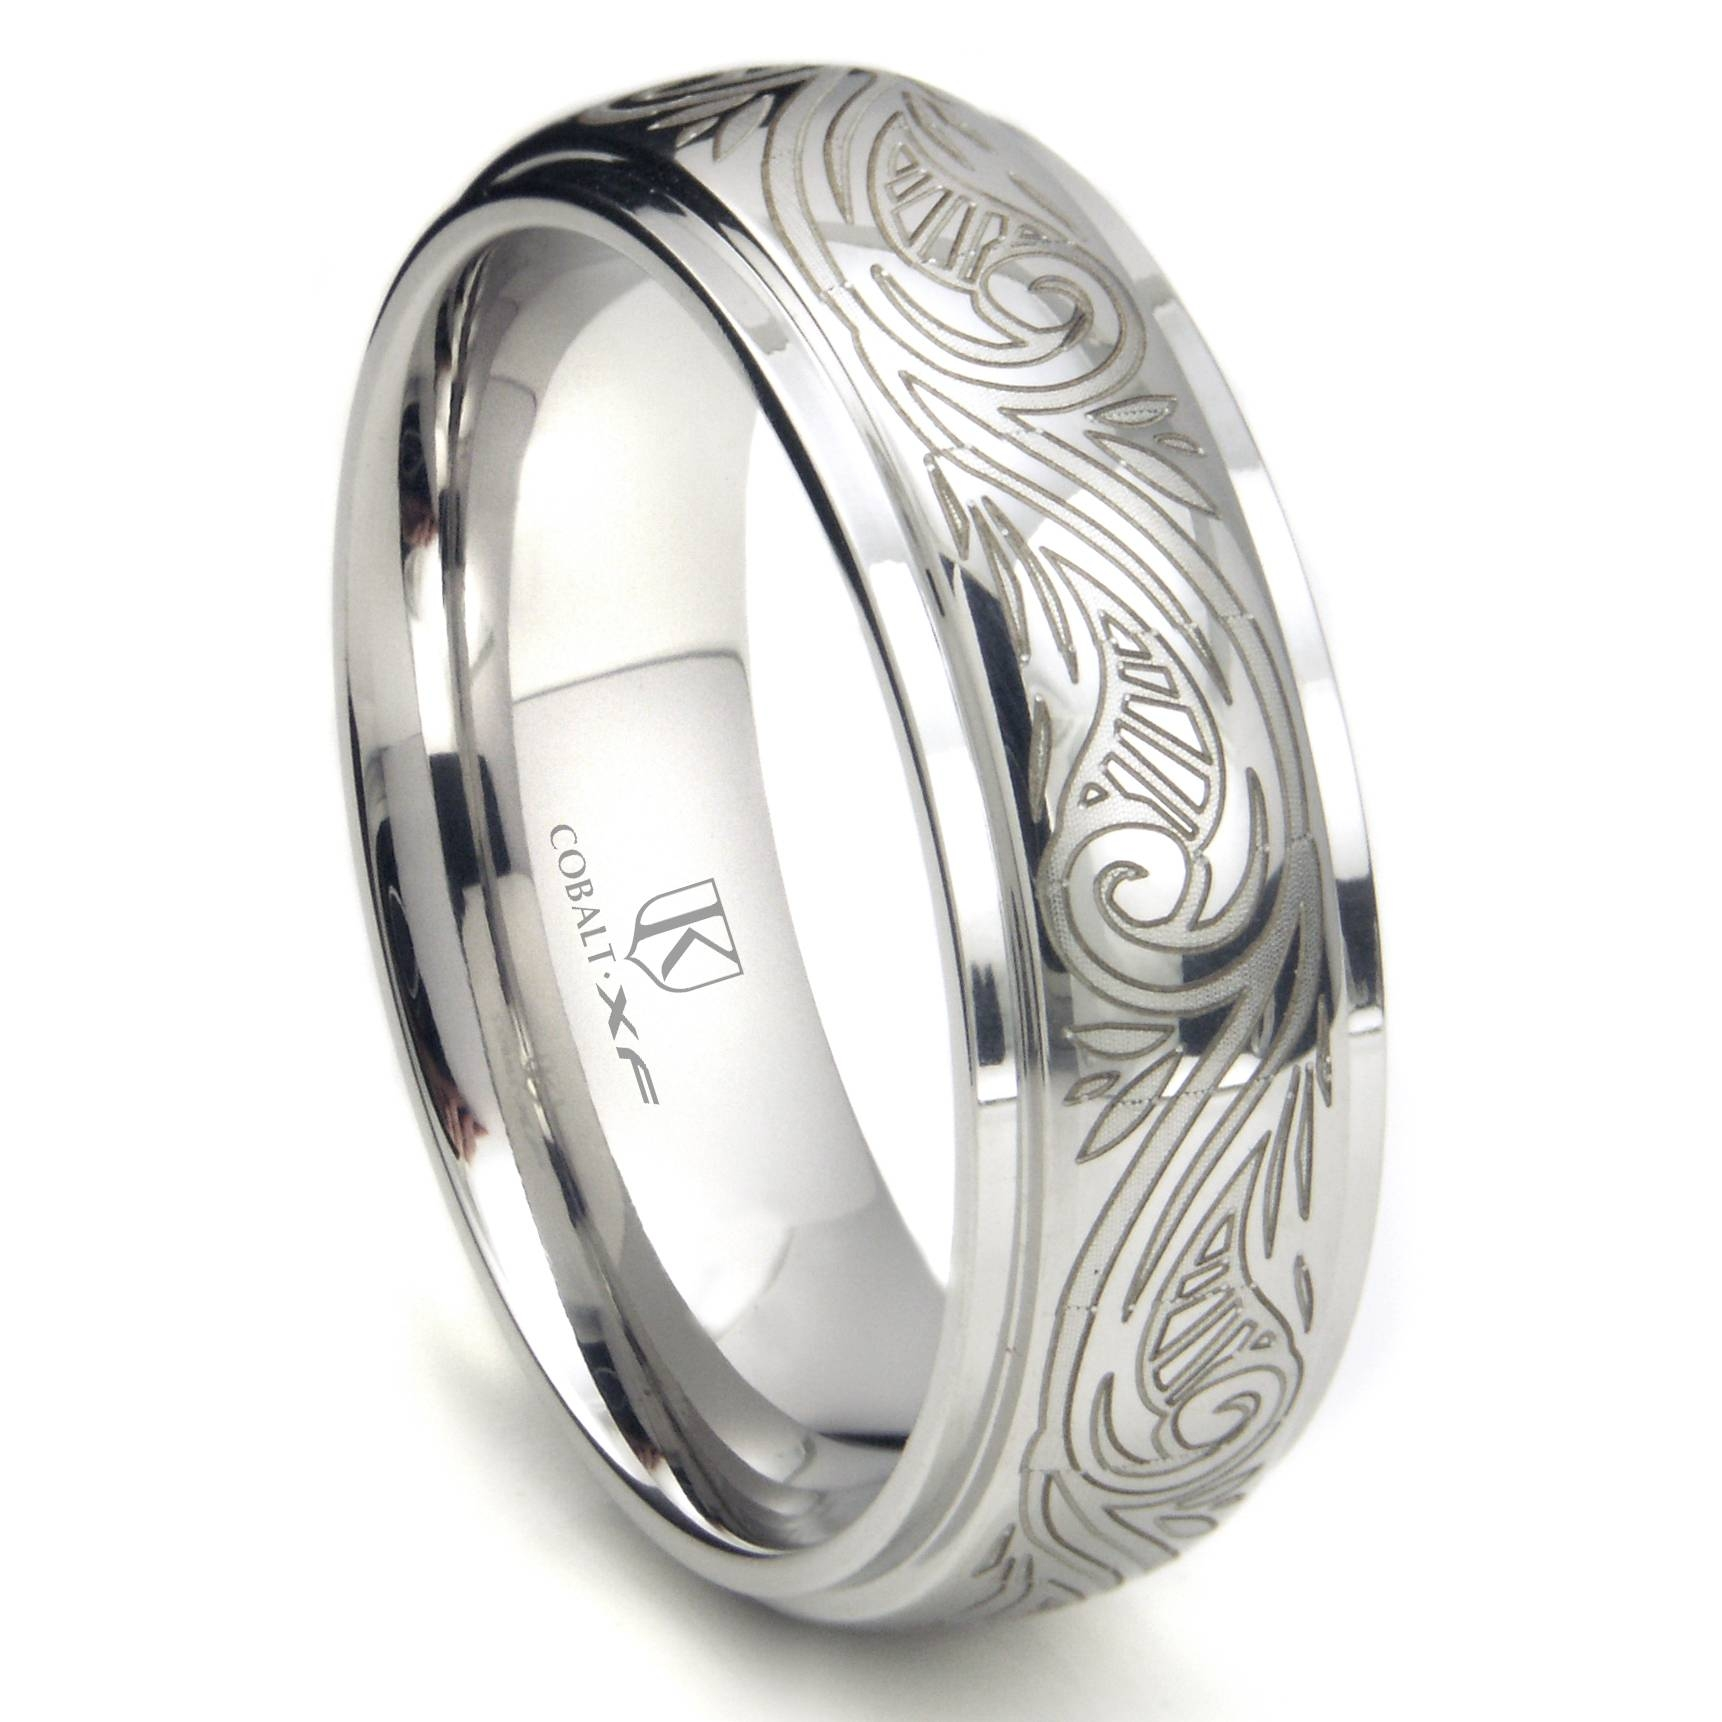 Cobalt Xf Chrome 8Mm Laser Engraved Paisley Motif Dome Wedding With Engravable Titanium Wedding Bands (View 2 of 15)